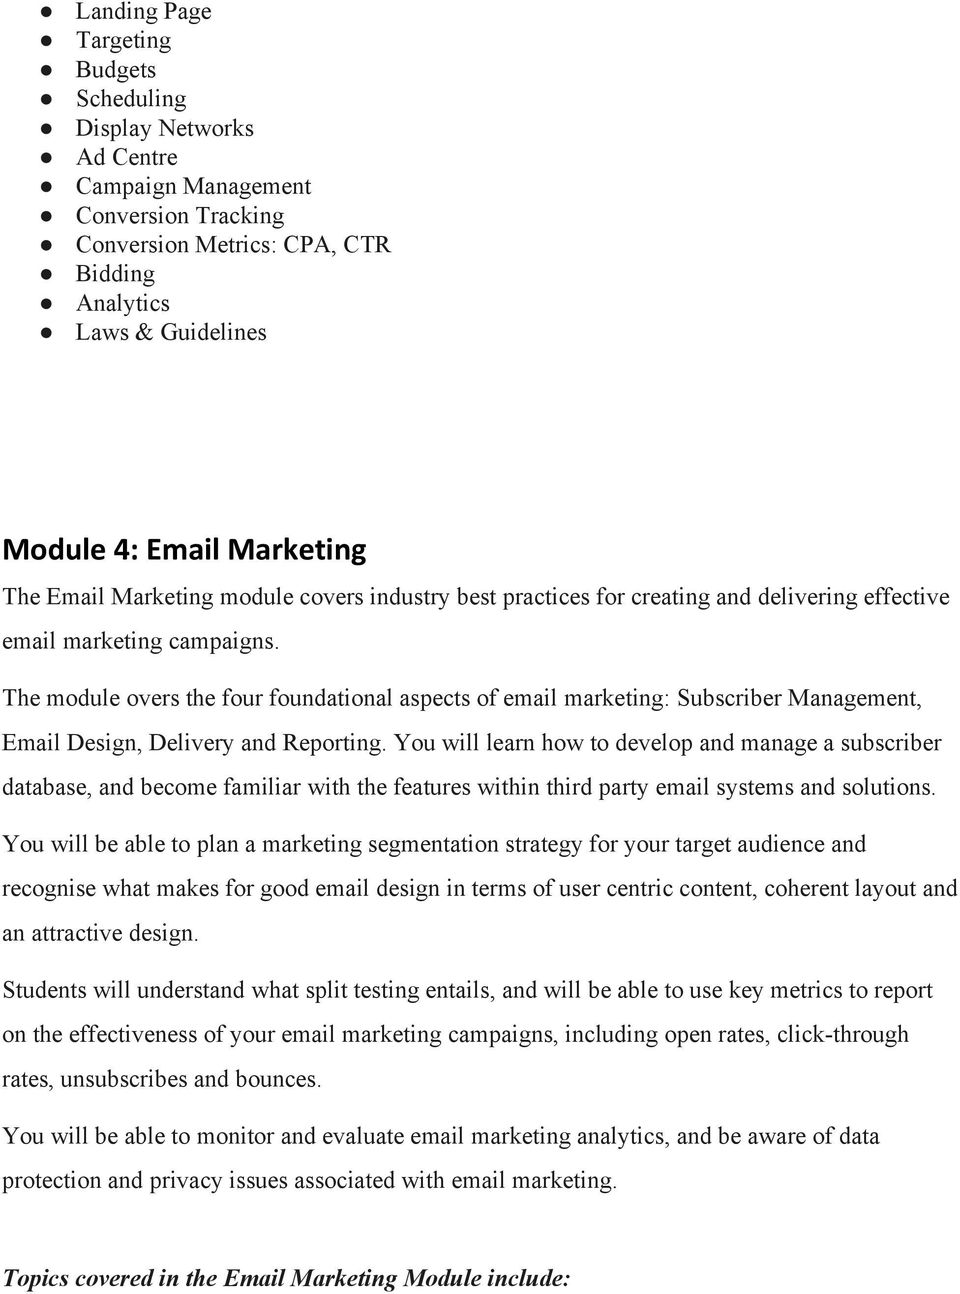 The module overs the four foundational aspects of email marketing: Subscriber Management, Email Design, Delivery and Reporting.